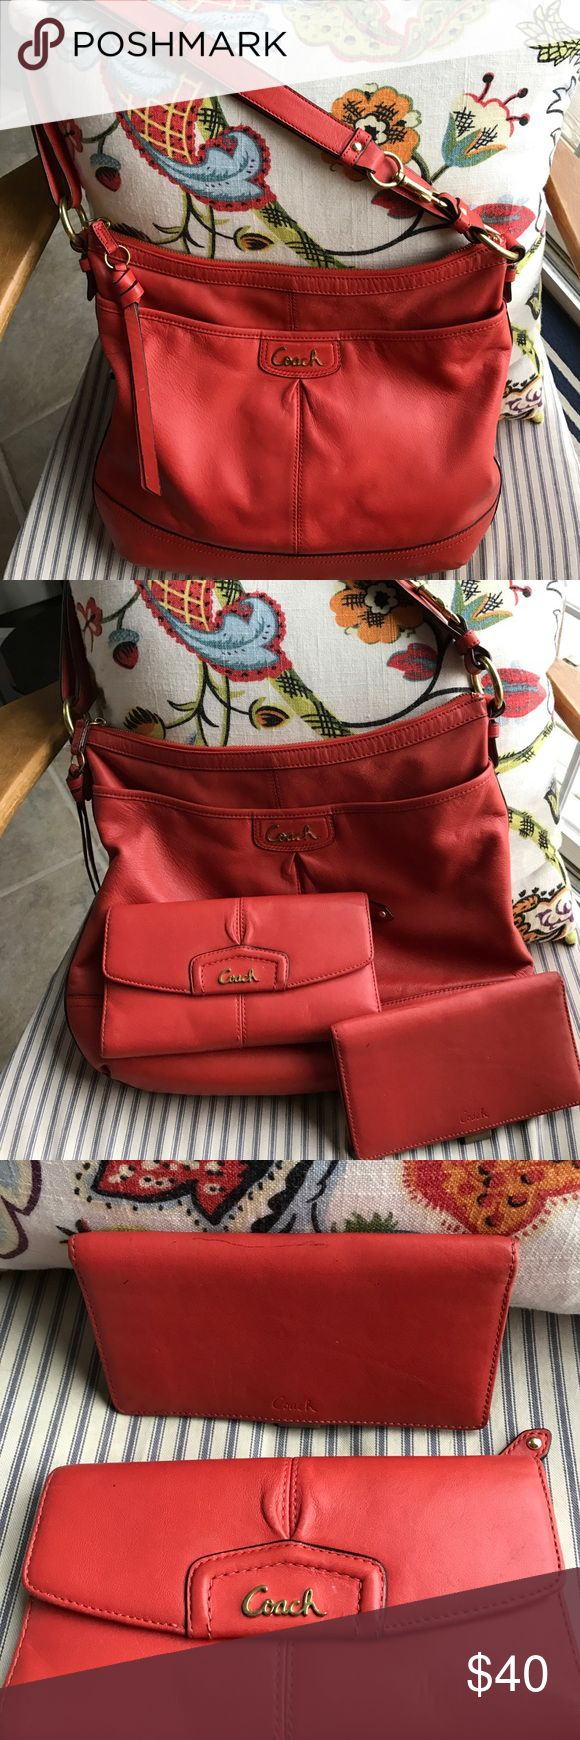 Coach hobo bag in persimmon and matching wallet Used and shows signs of wear but if you're looking for a beautiful Coach bag and wallet and don't care that they're broken in and show some wear, this is priced to go! Coach Bags Hobos